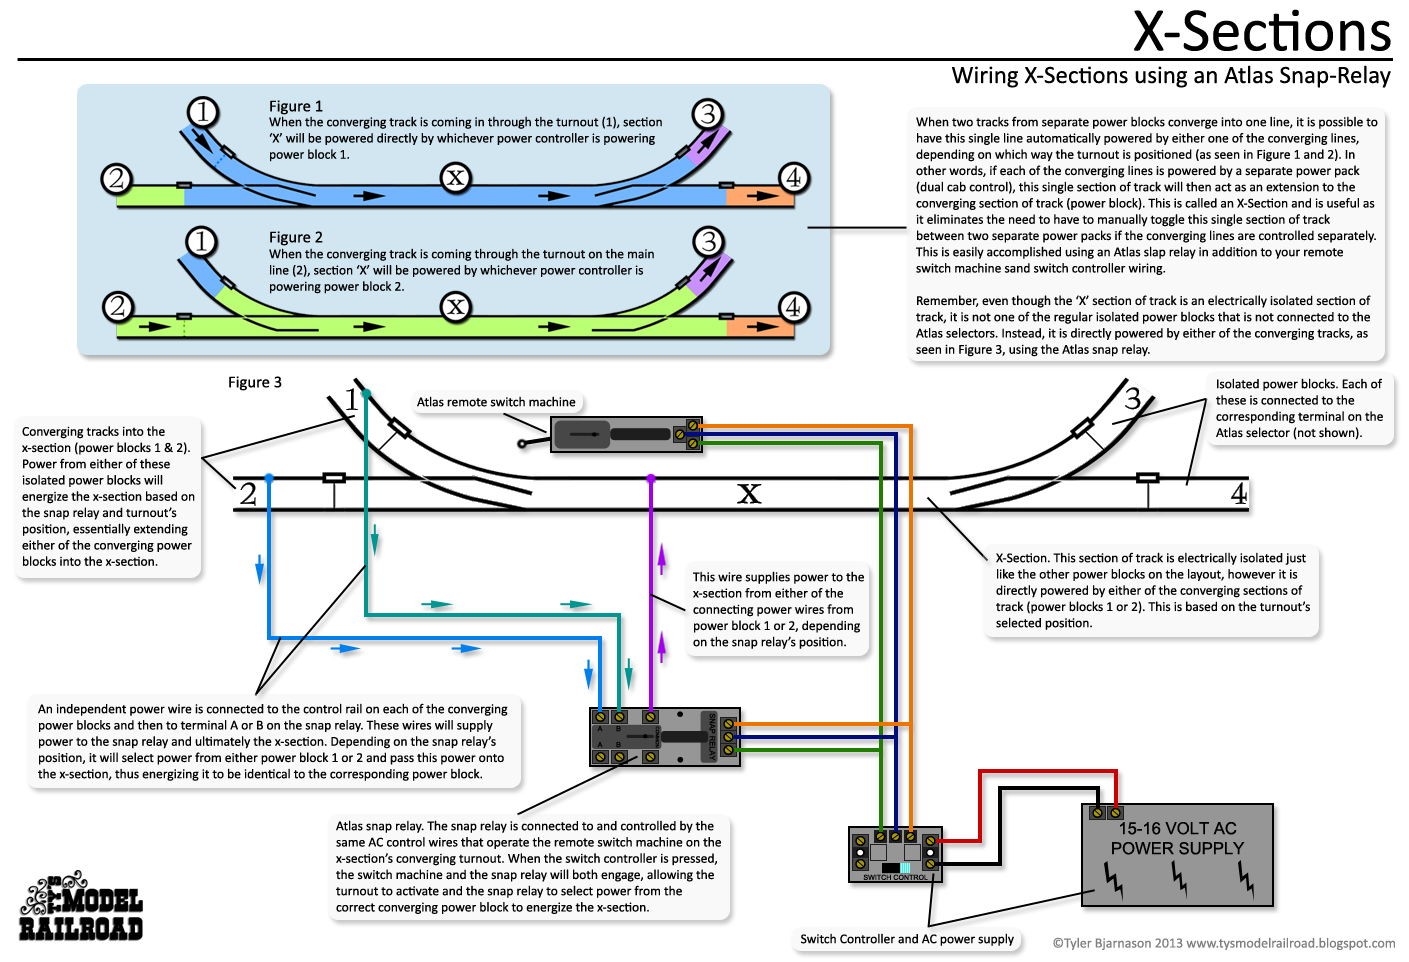 ty s model railroad wiring diagrams how to wire an x section using an atlas snap relay and existing remote switch